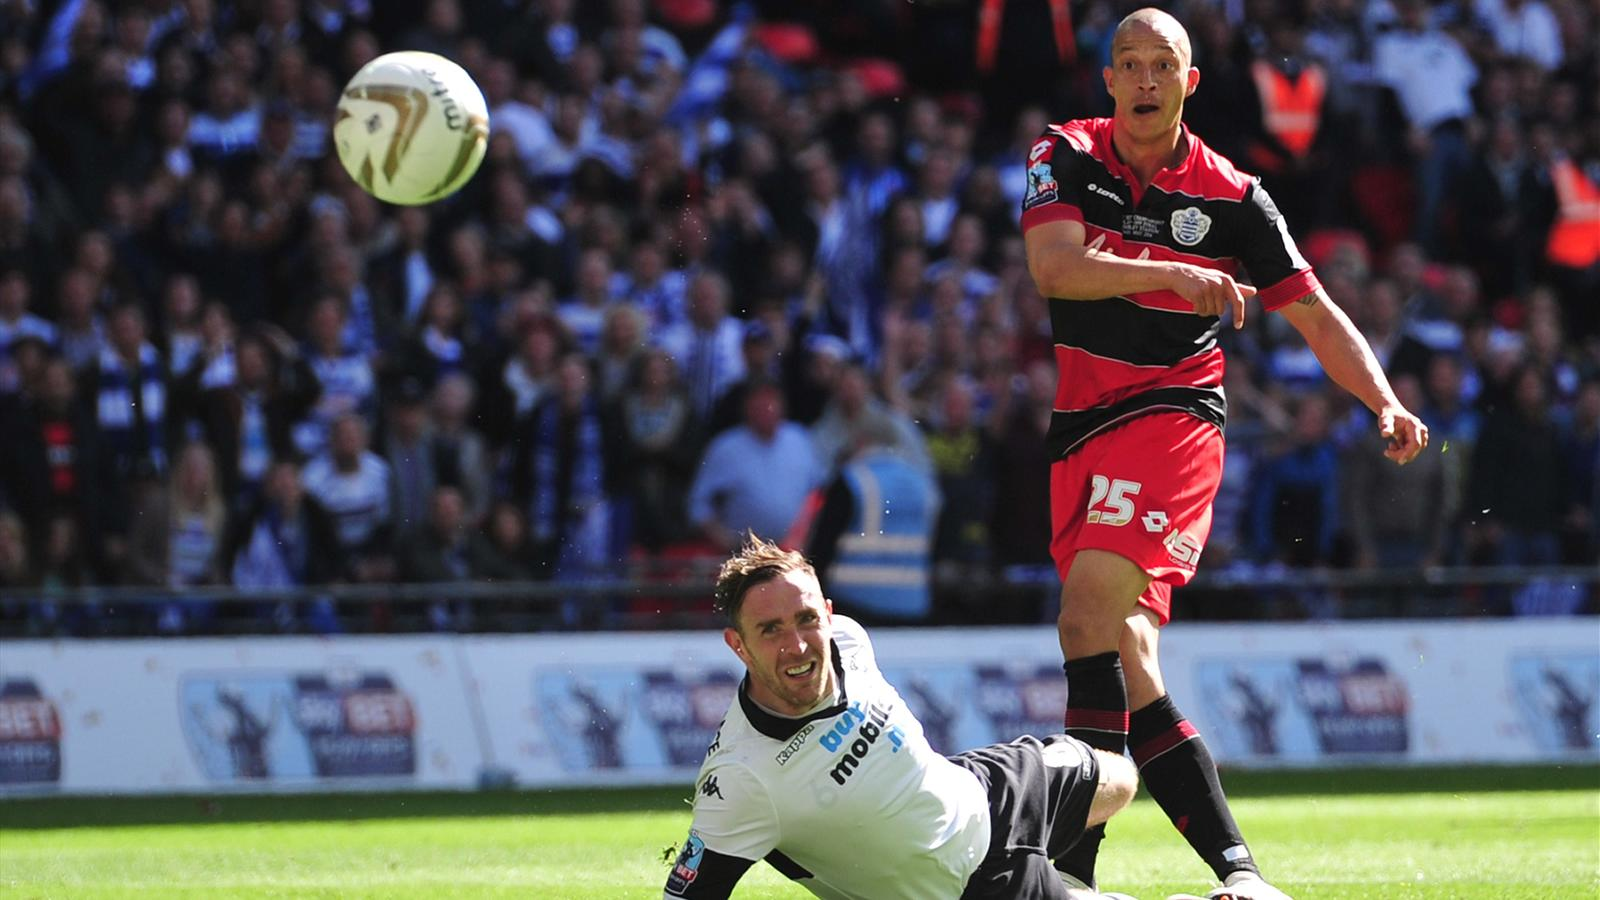 : QPR's English striker Bobby Zamora scores the opening goal during the English Championship Play Off final football match between Derby County and Queens Park Rangers at Wembley Stadium in London on May 24, 2014.